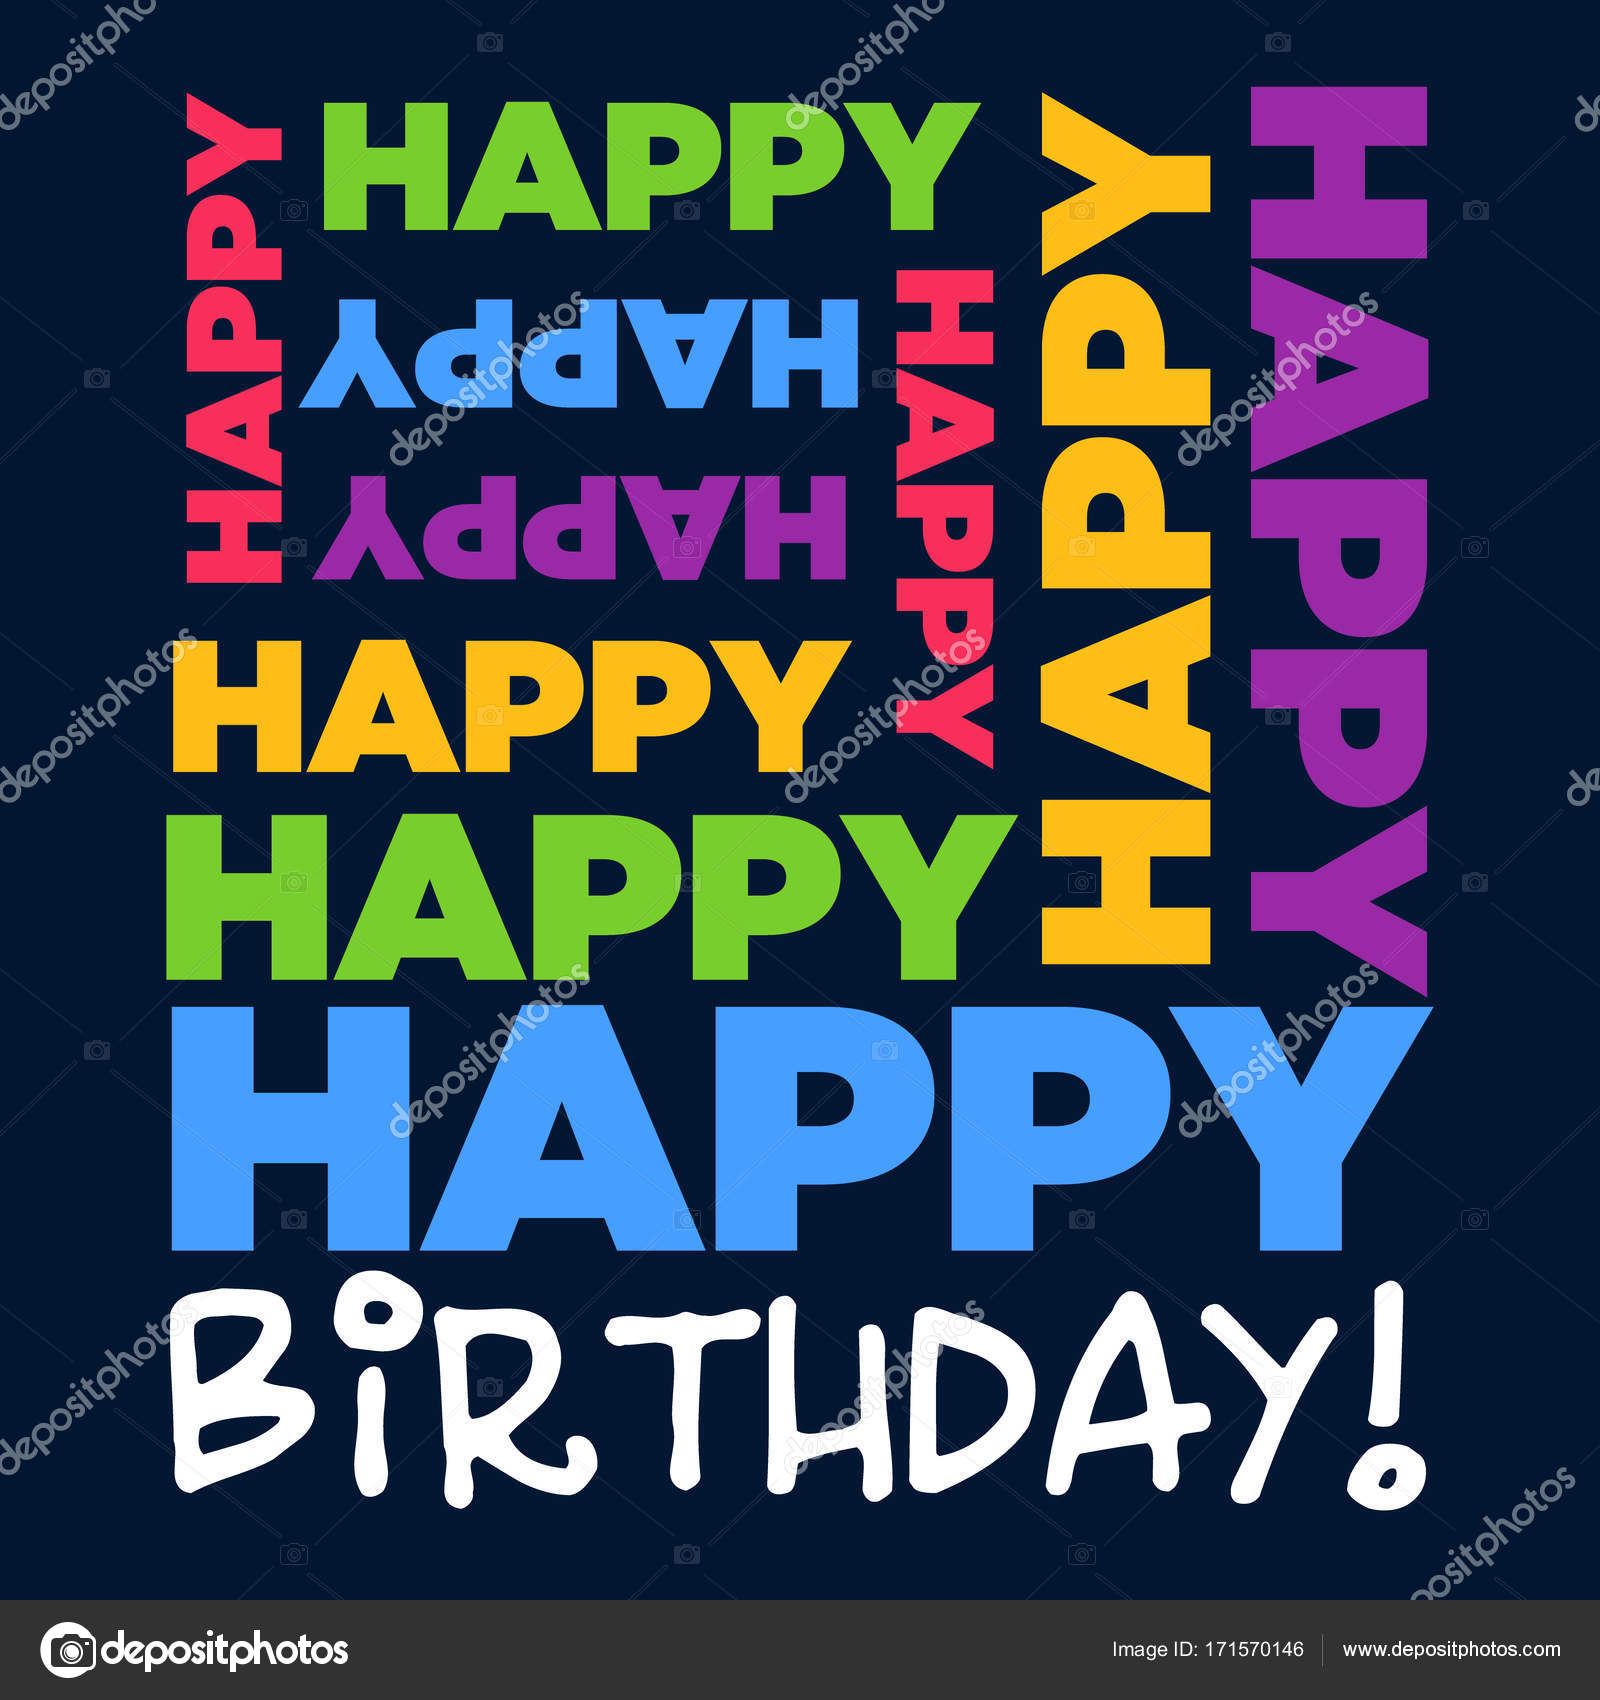 Happy birthday greeting card stock vector mictoon 171570146 happy birthday greeting card stock vector kristyandbryce Image collections